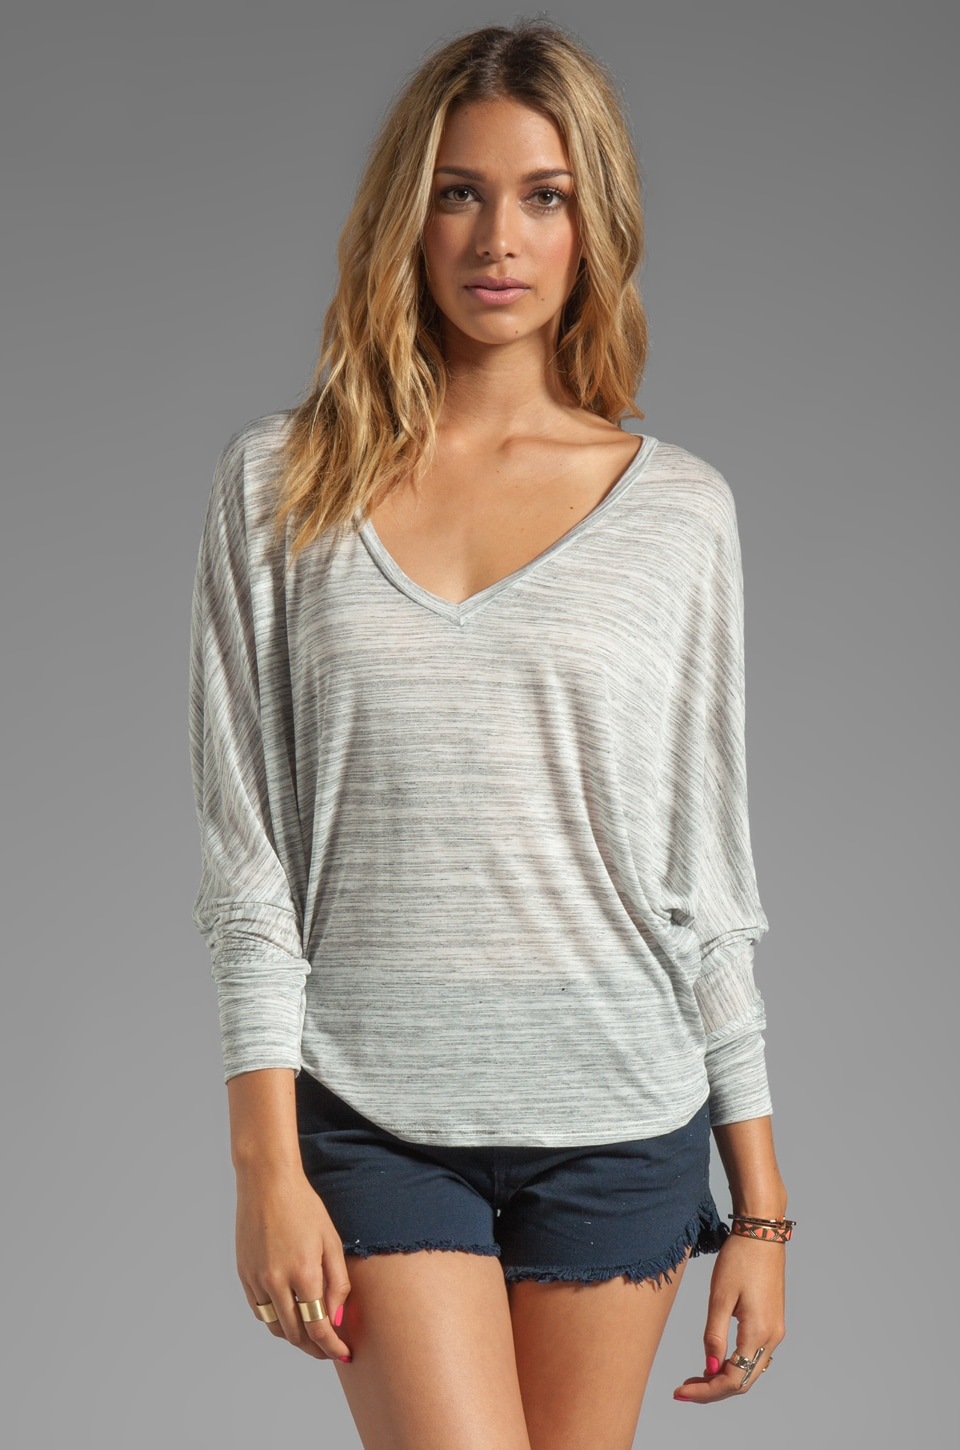 Blue Life V Neck Cocoon Top in Stone